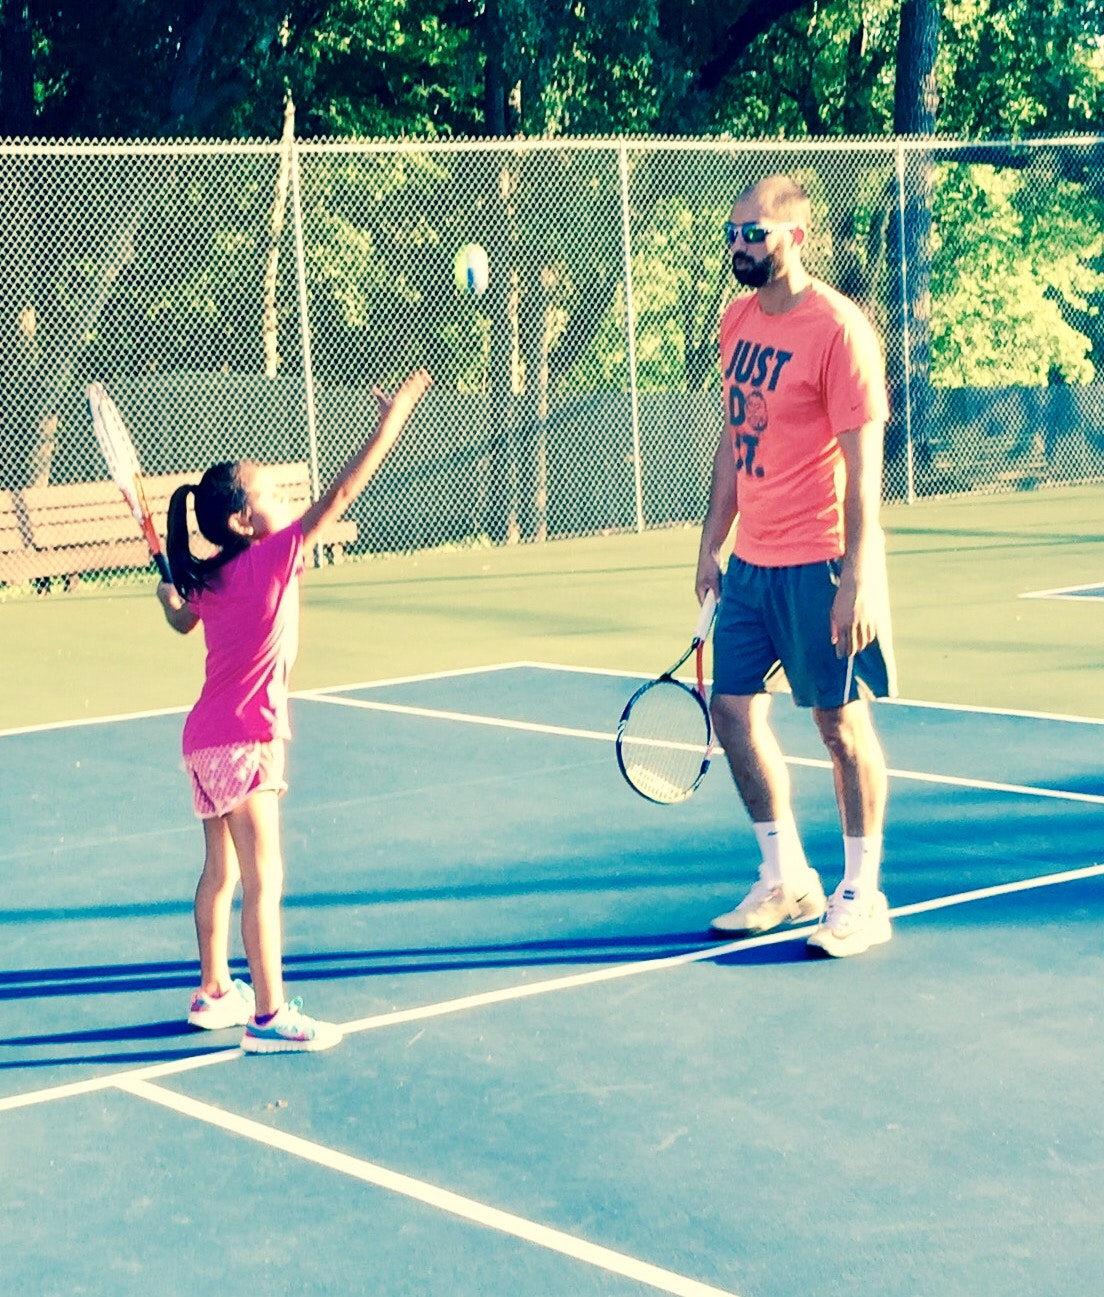 Arnaud G. teaches tennis lessons in San Antonio, TEXAS